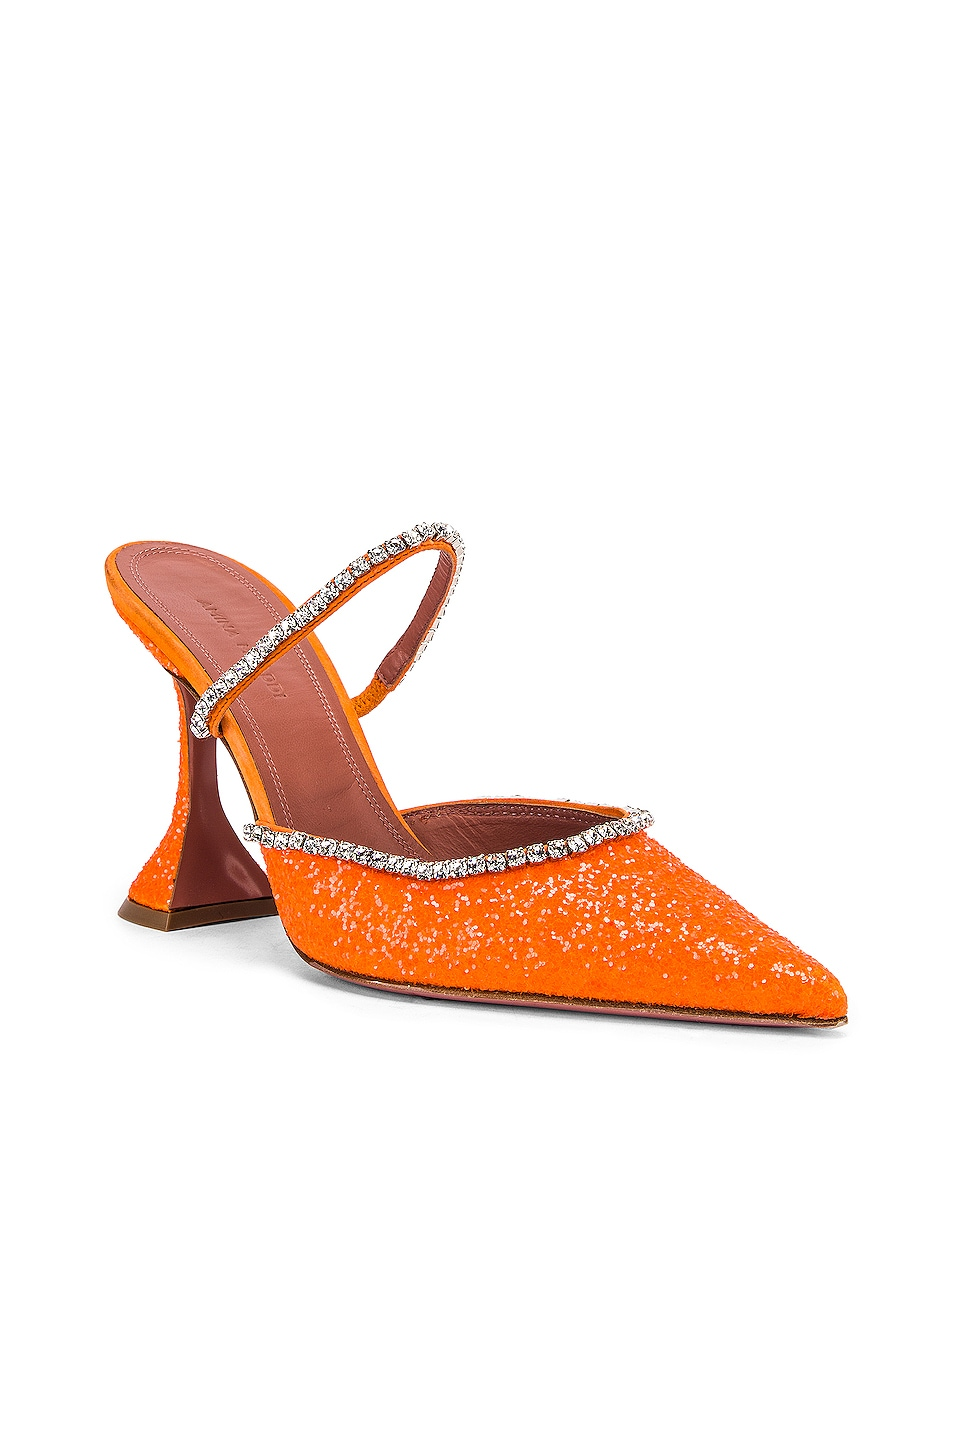 Image 2 of AMINA MUADDI Gilda Mule in Orange Fluo Glitter